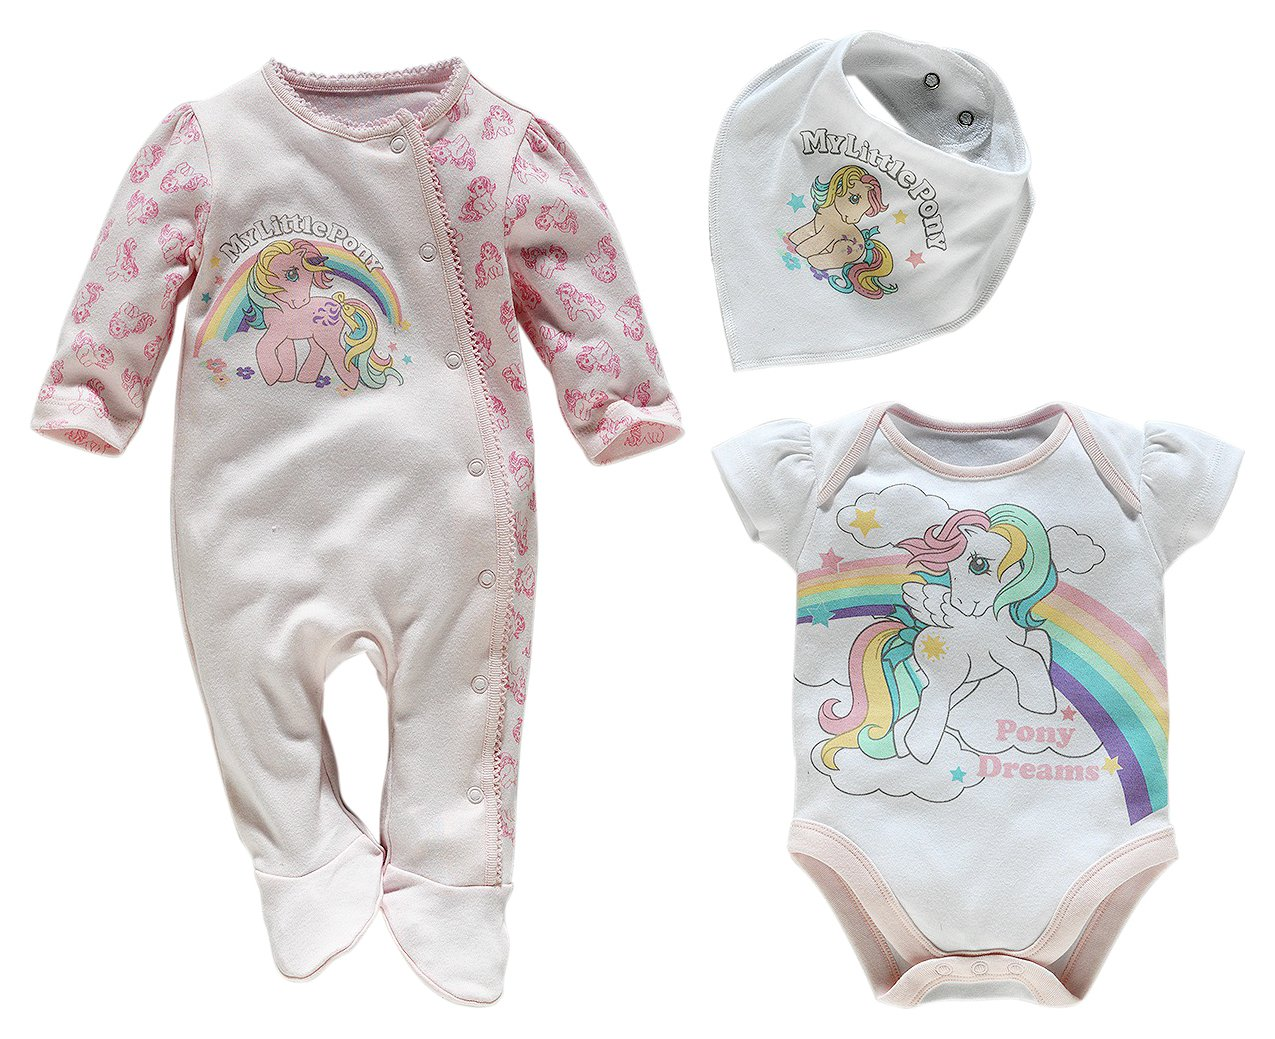 Image of My Little Pony - Pink 3 Piece Baby - Gift Set ? 6?9 Months